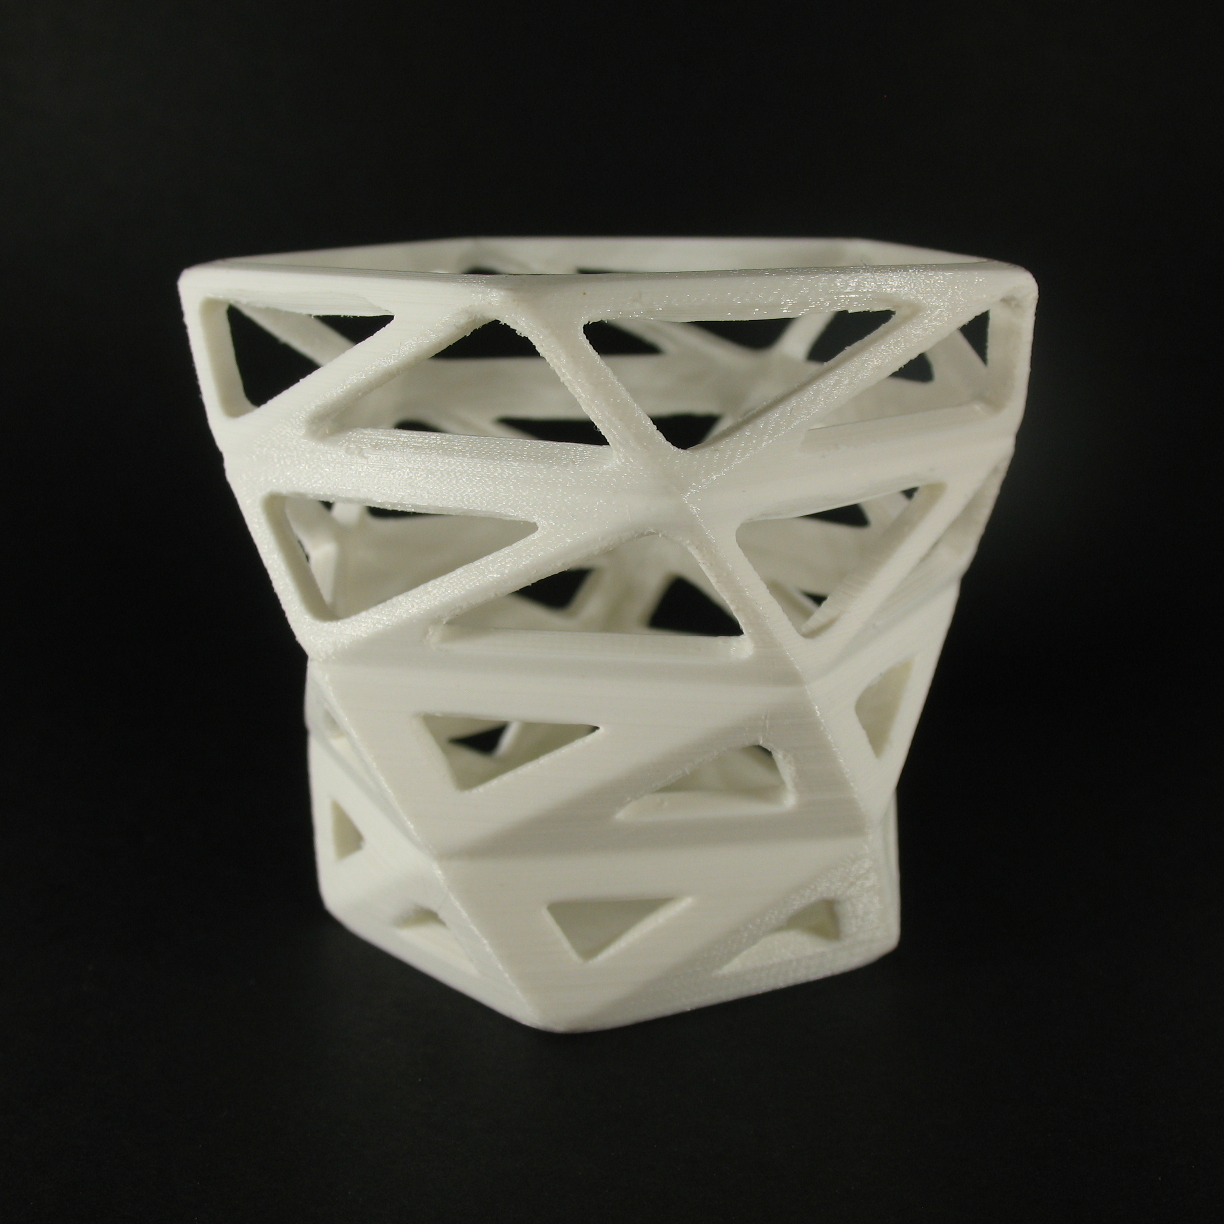 low poly style Orchid pot / planter image